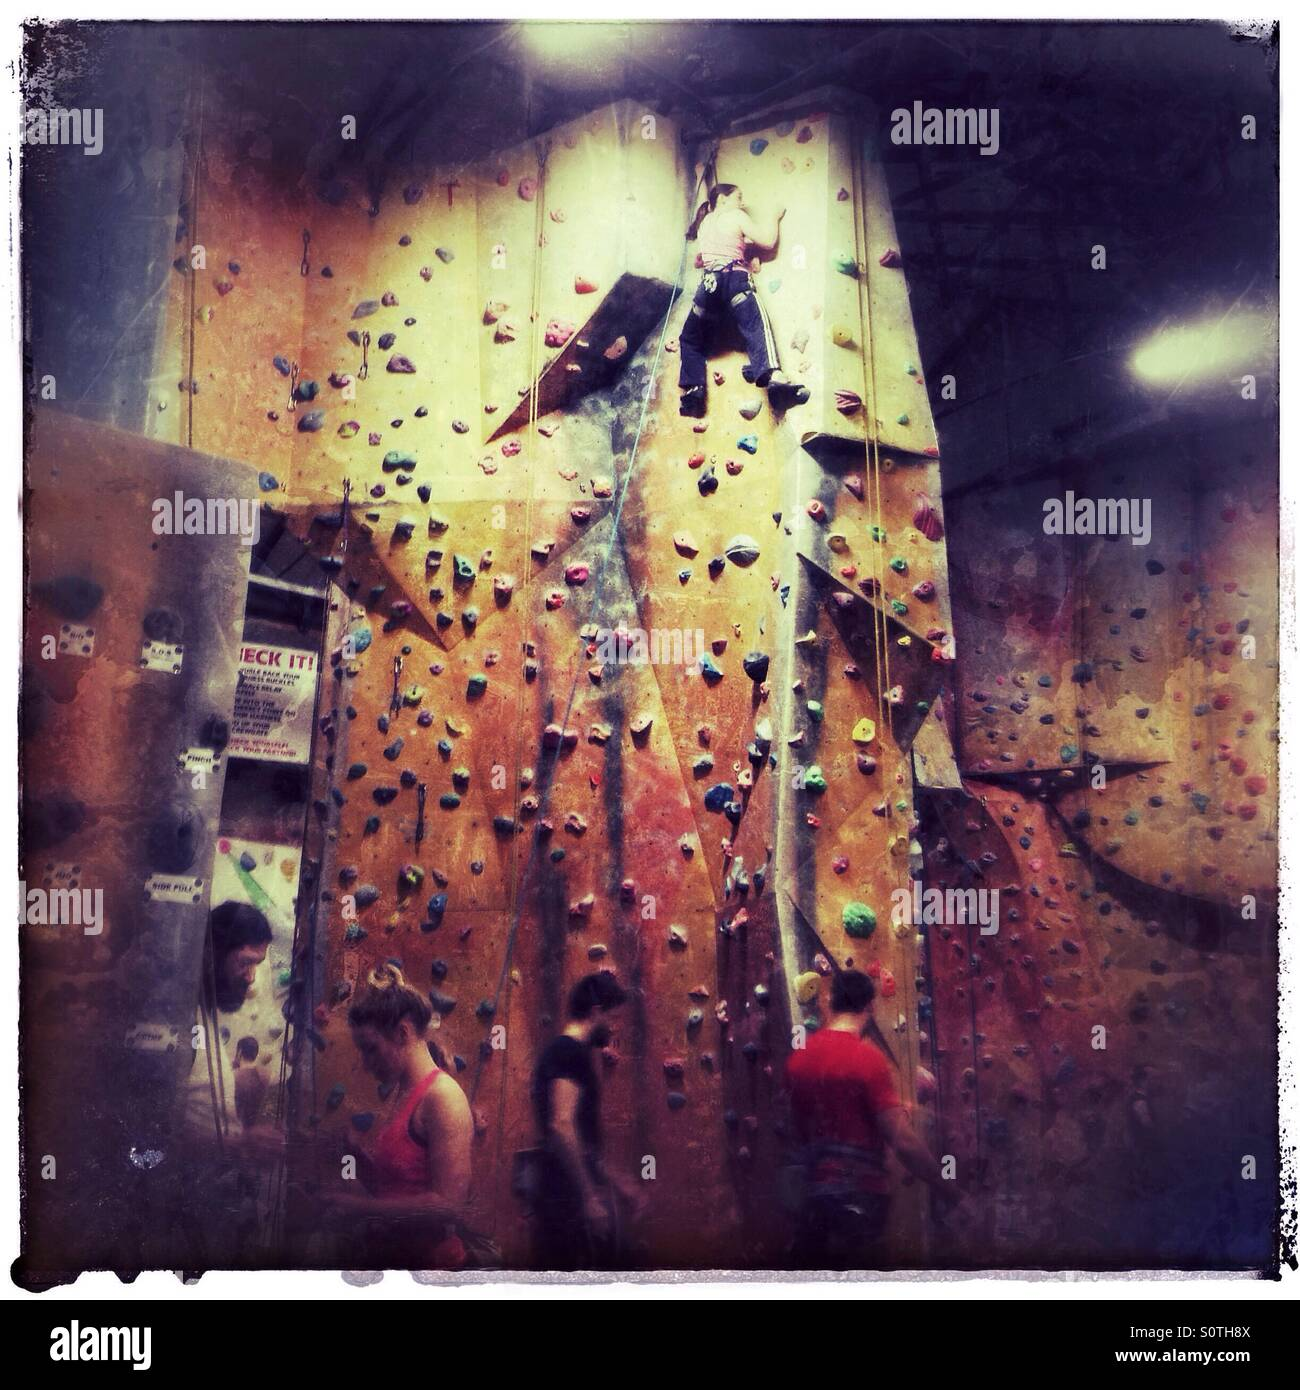 Pulling on plastic - Indoor rock climbing - Stock Image